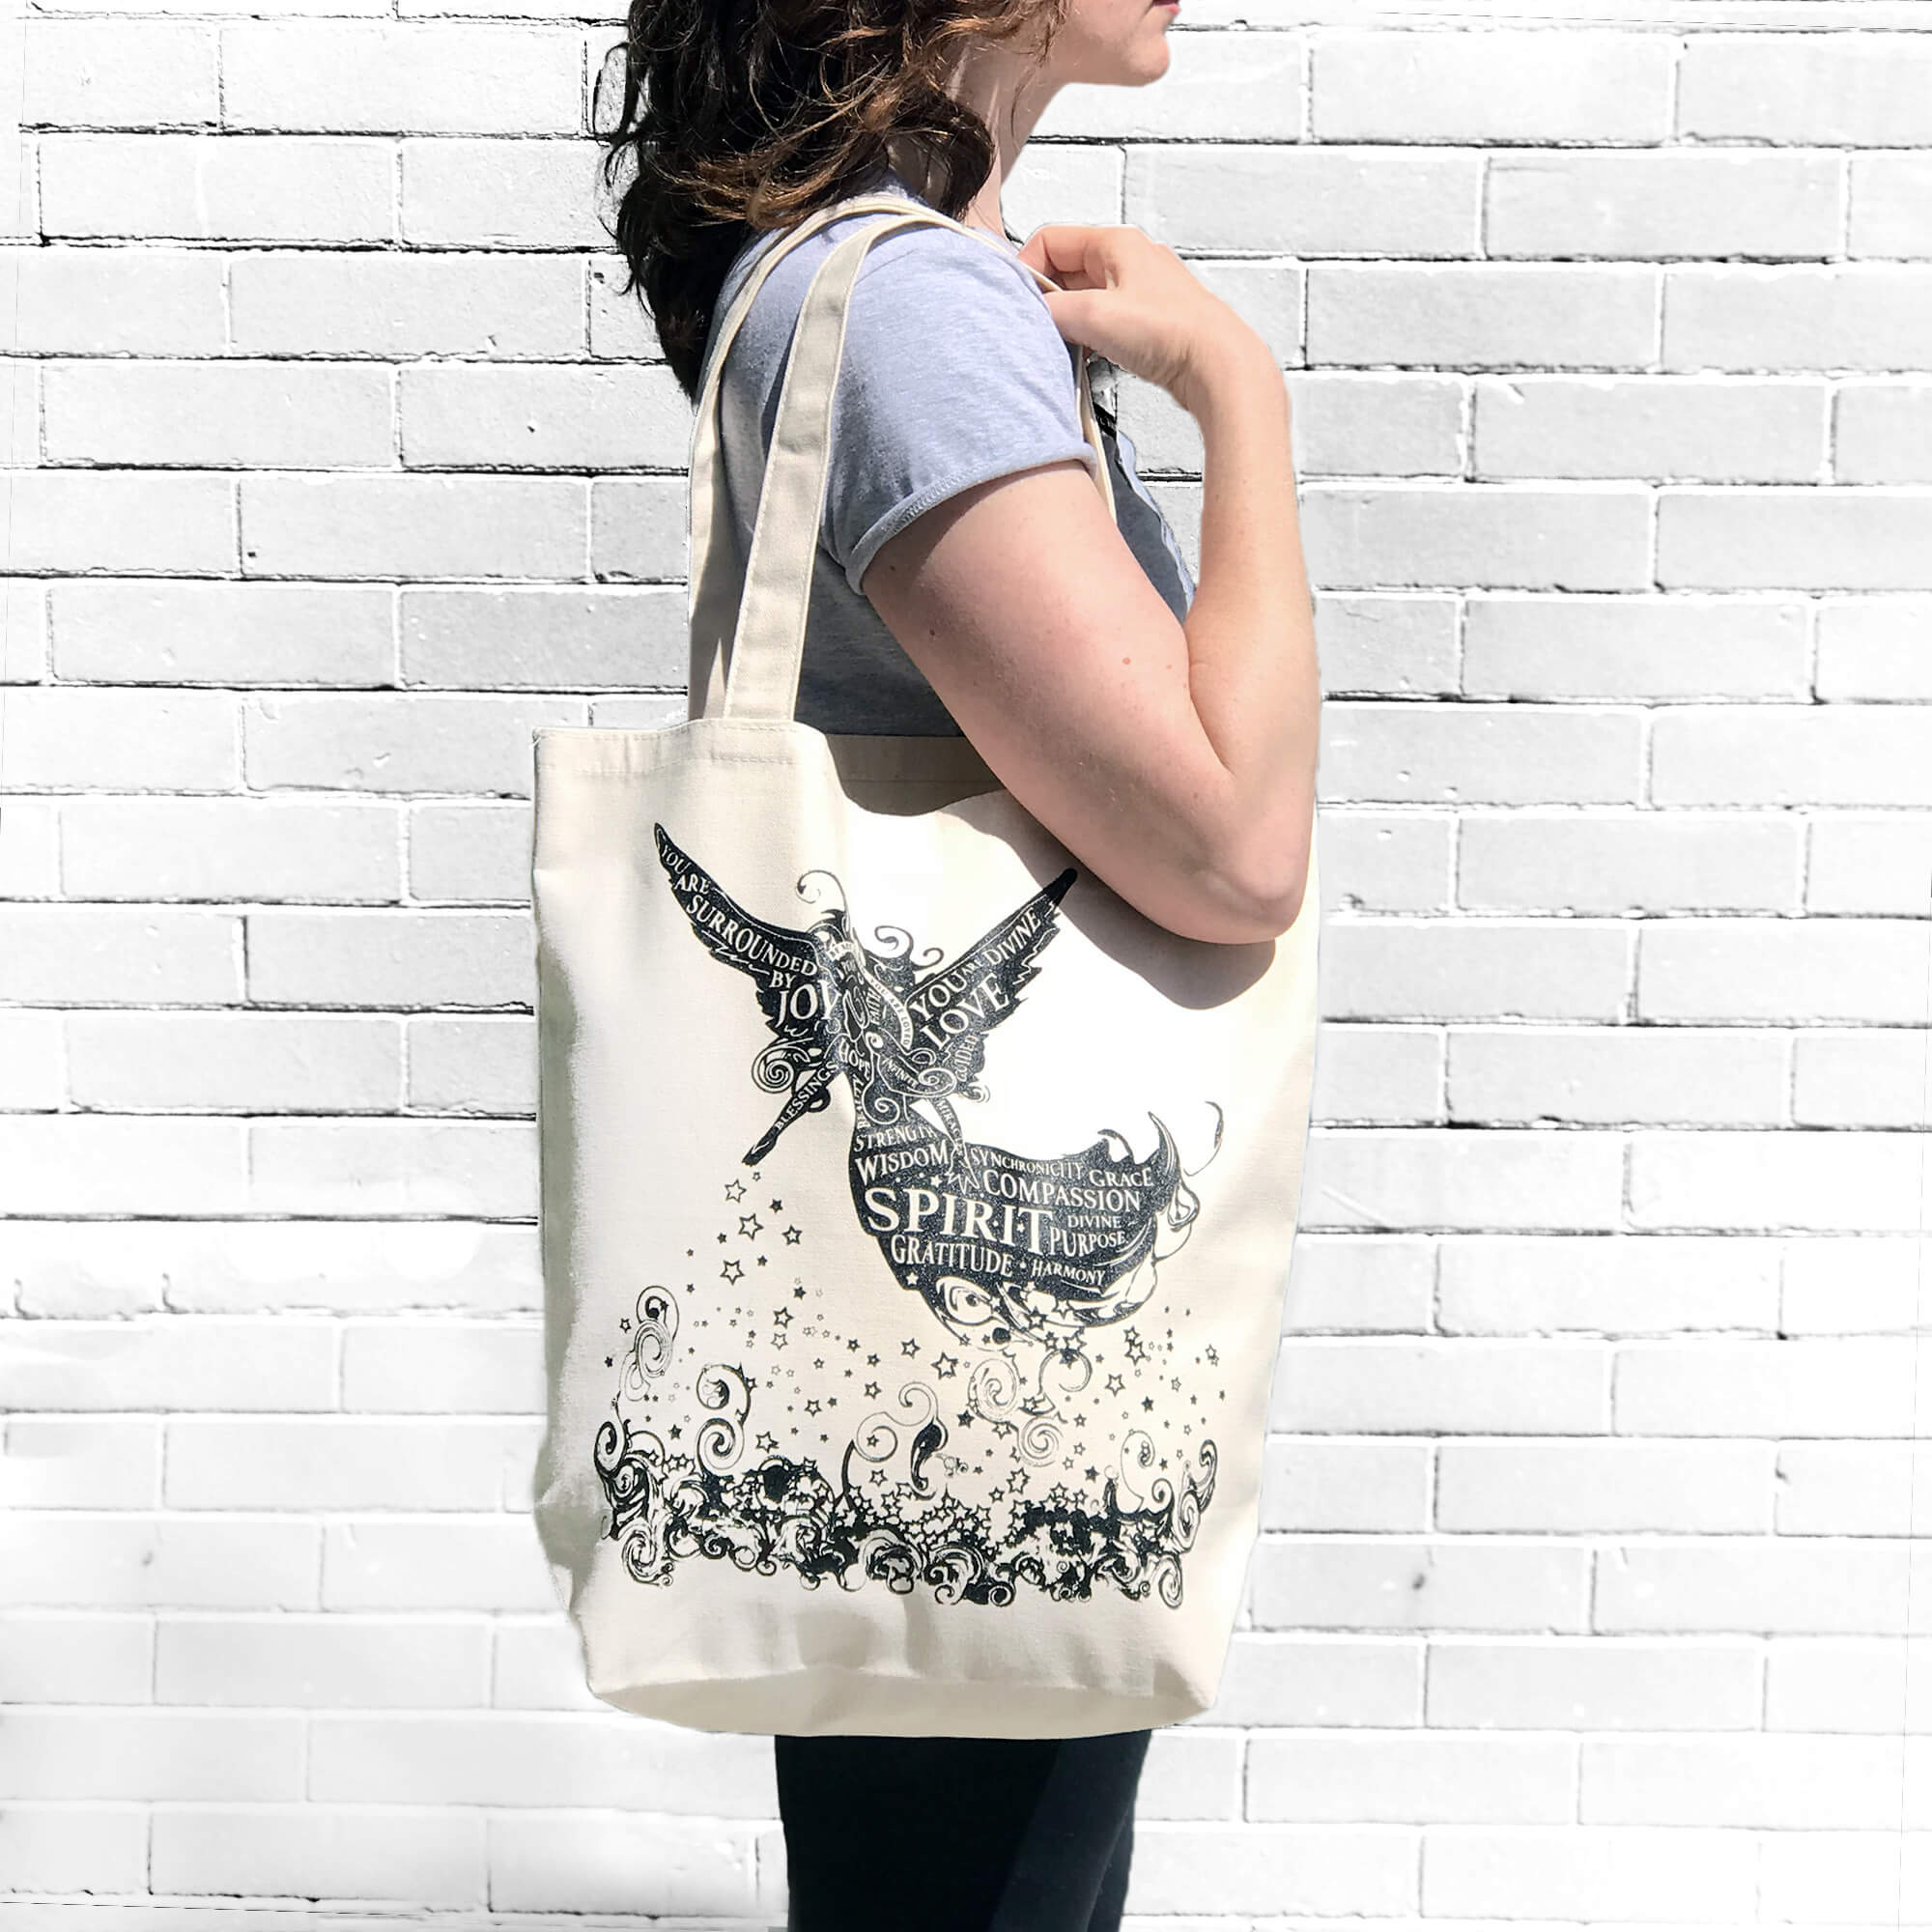 'Divine Words' large organic cotton tote - $20